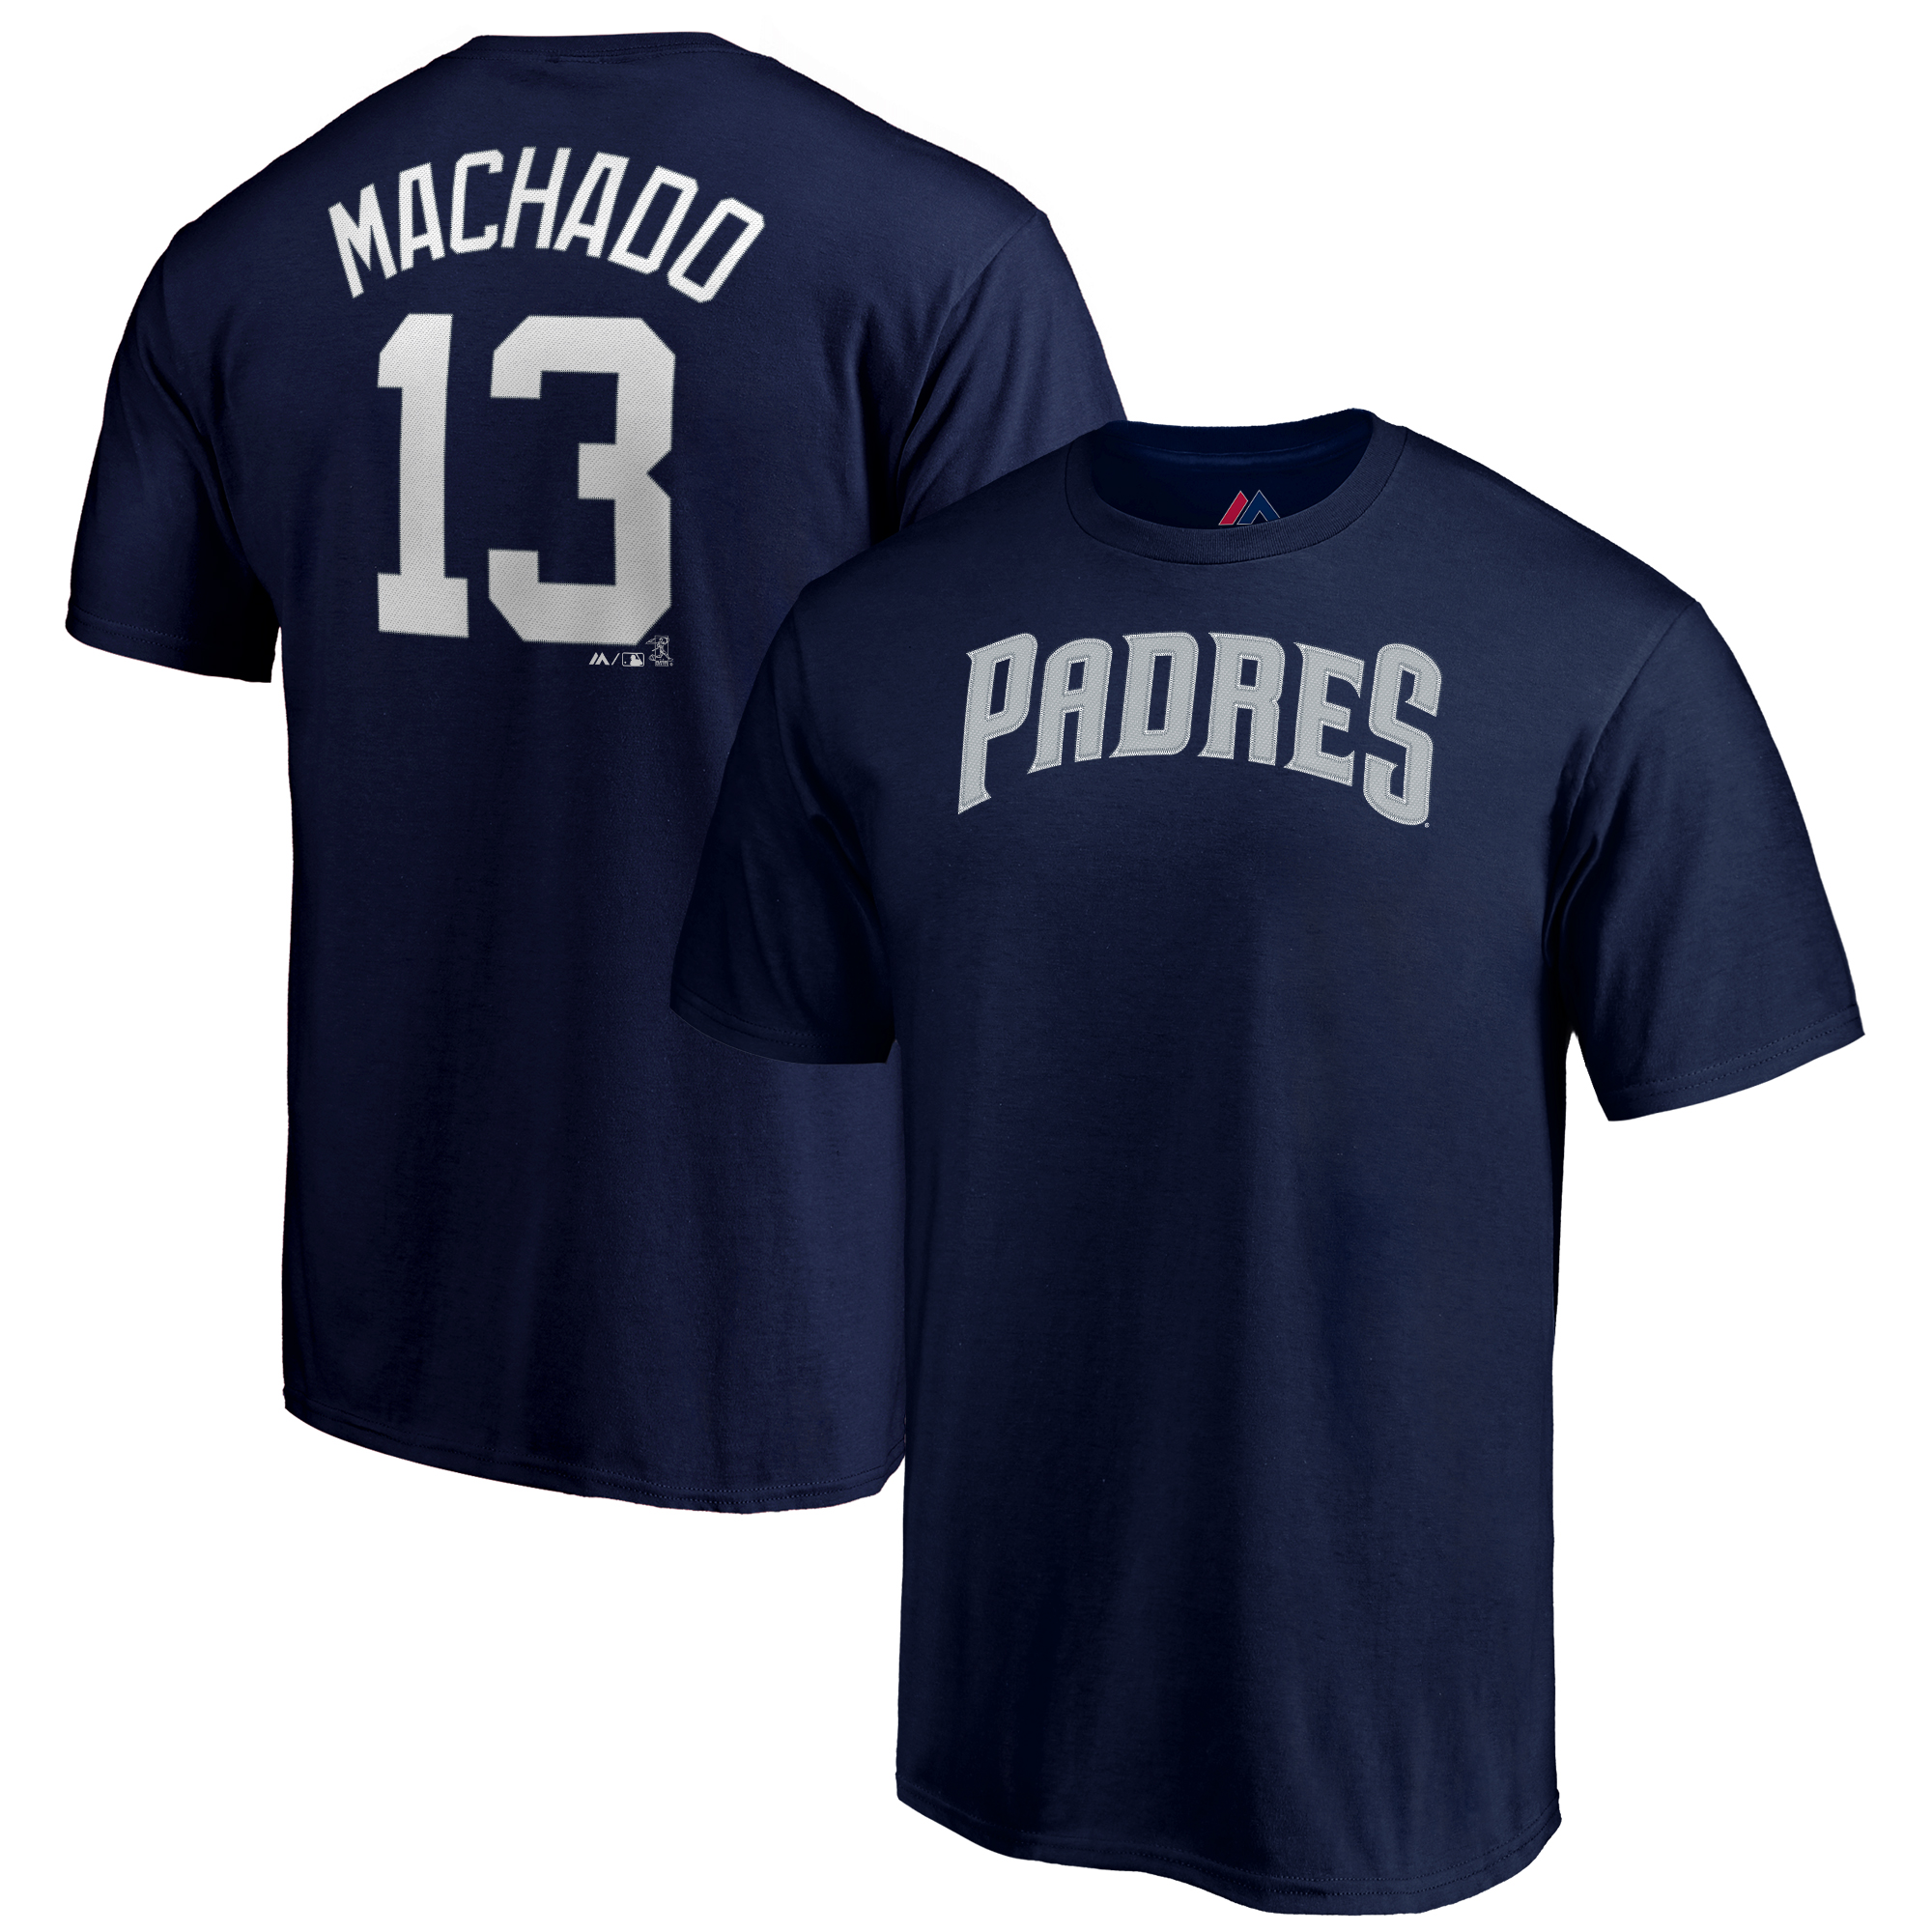 Manny Machado San Diego Padres Majestic Youth Name & Number T-Shirt - Navy